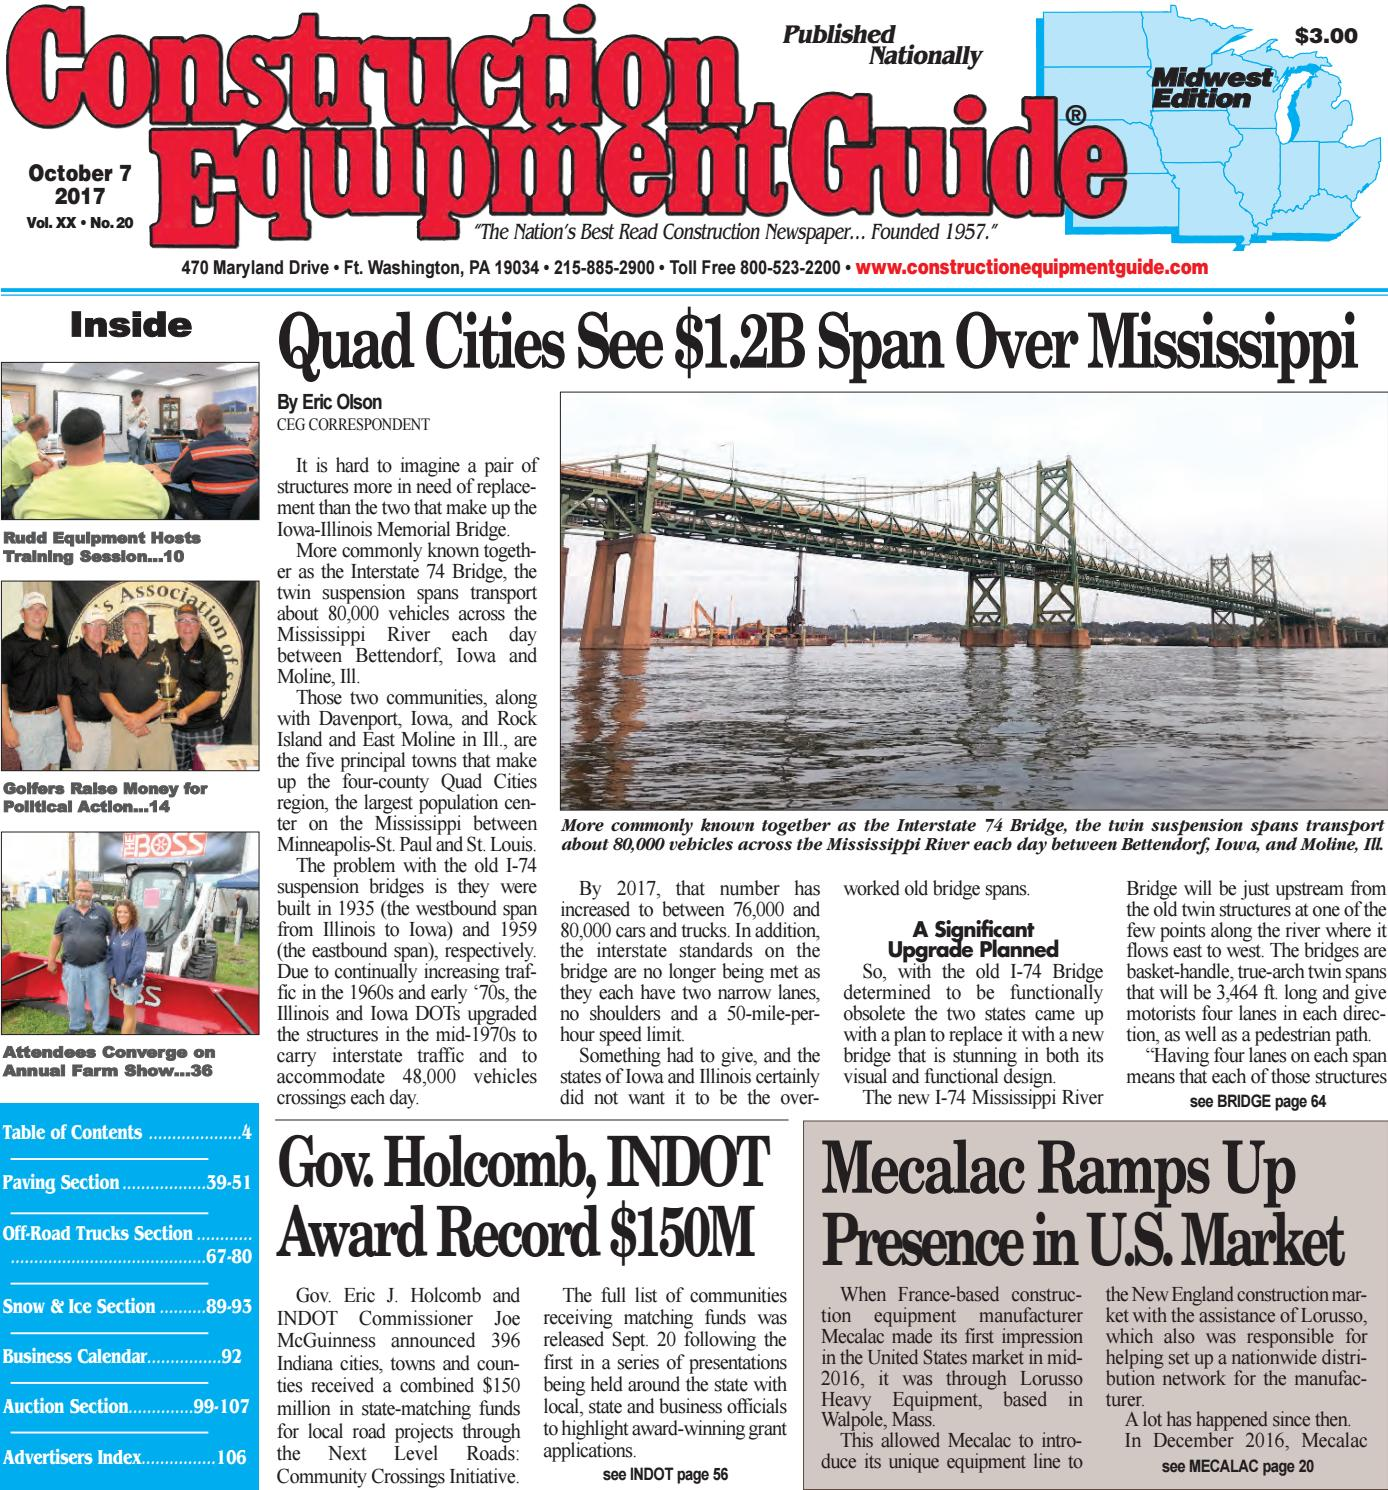 Midwest 20 October 7, 2017 by Construction Equipment Guide - issuu